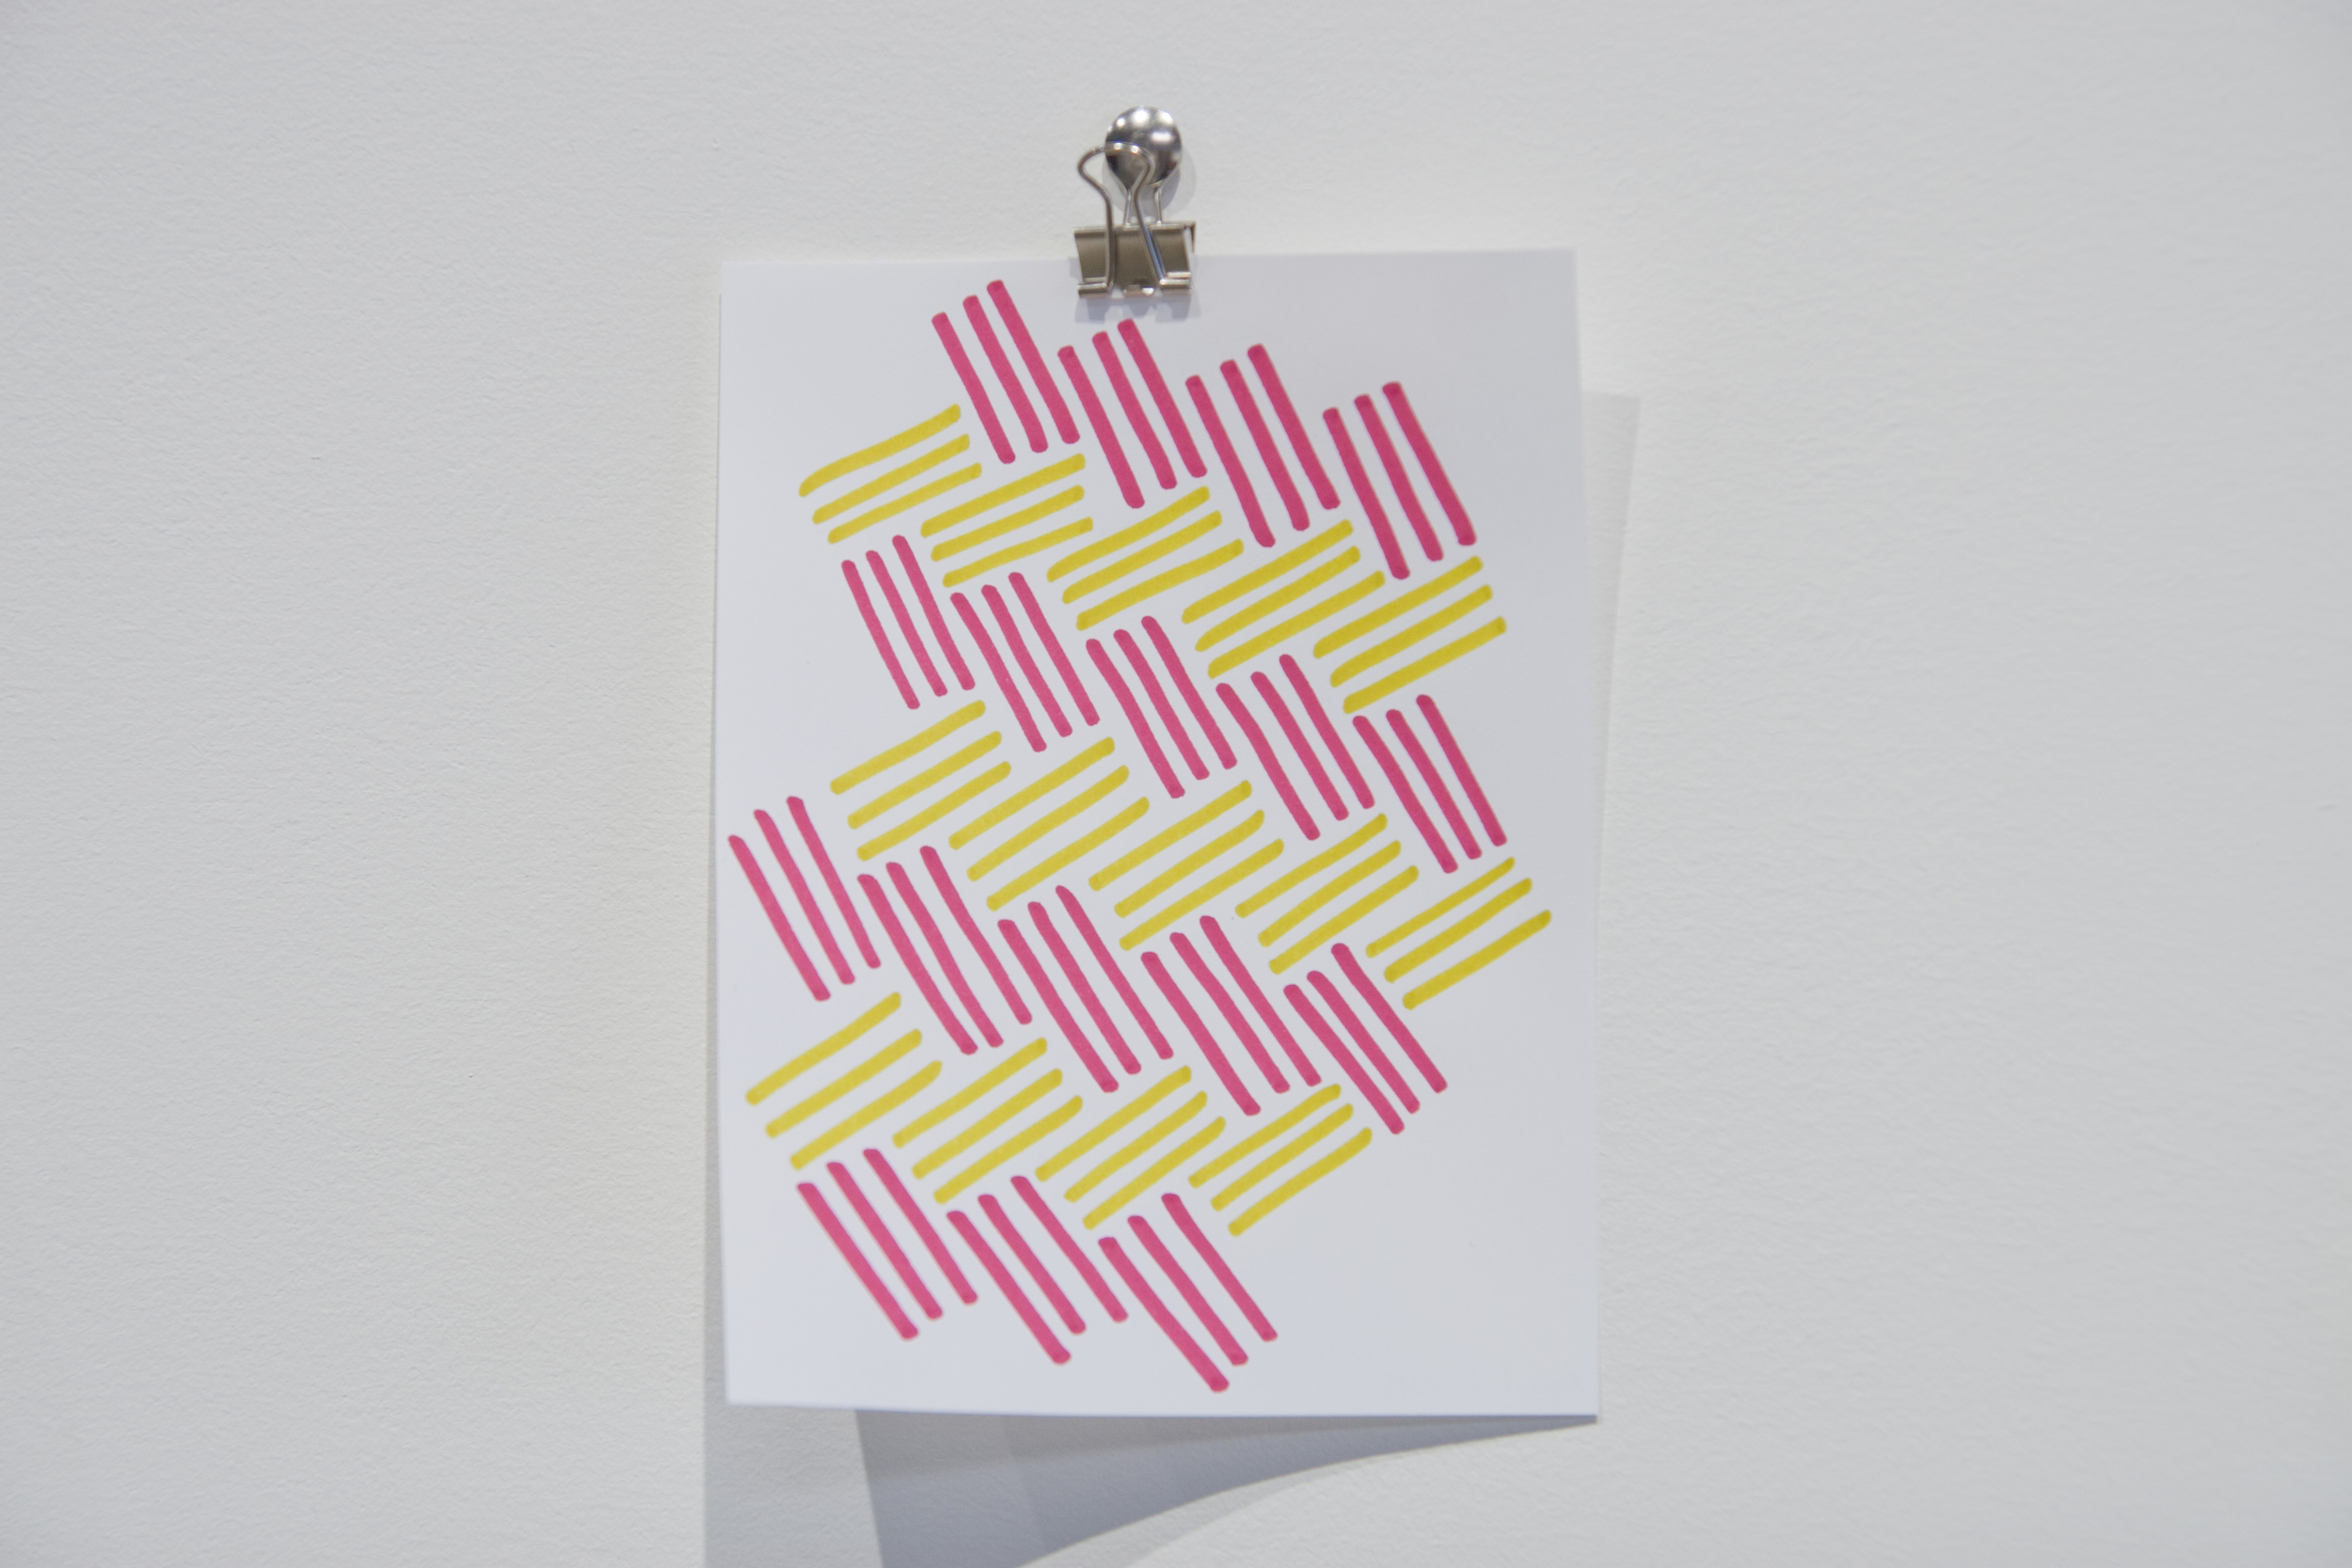 Drawings , 2014/15,marker, pen, and/or pencil crayon on paper,13 x 10 cm (4 x 5 1/4 in)